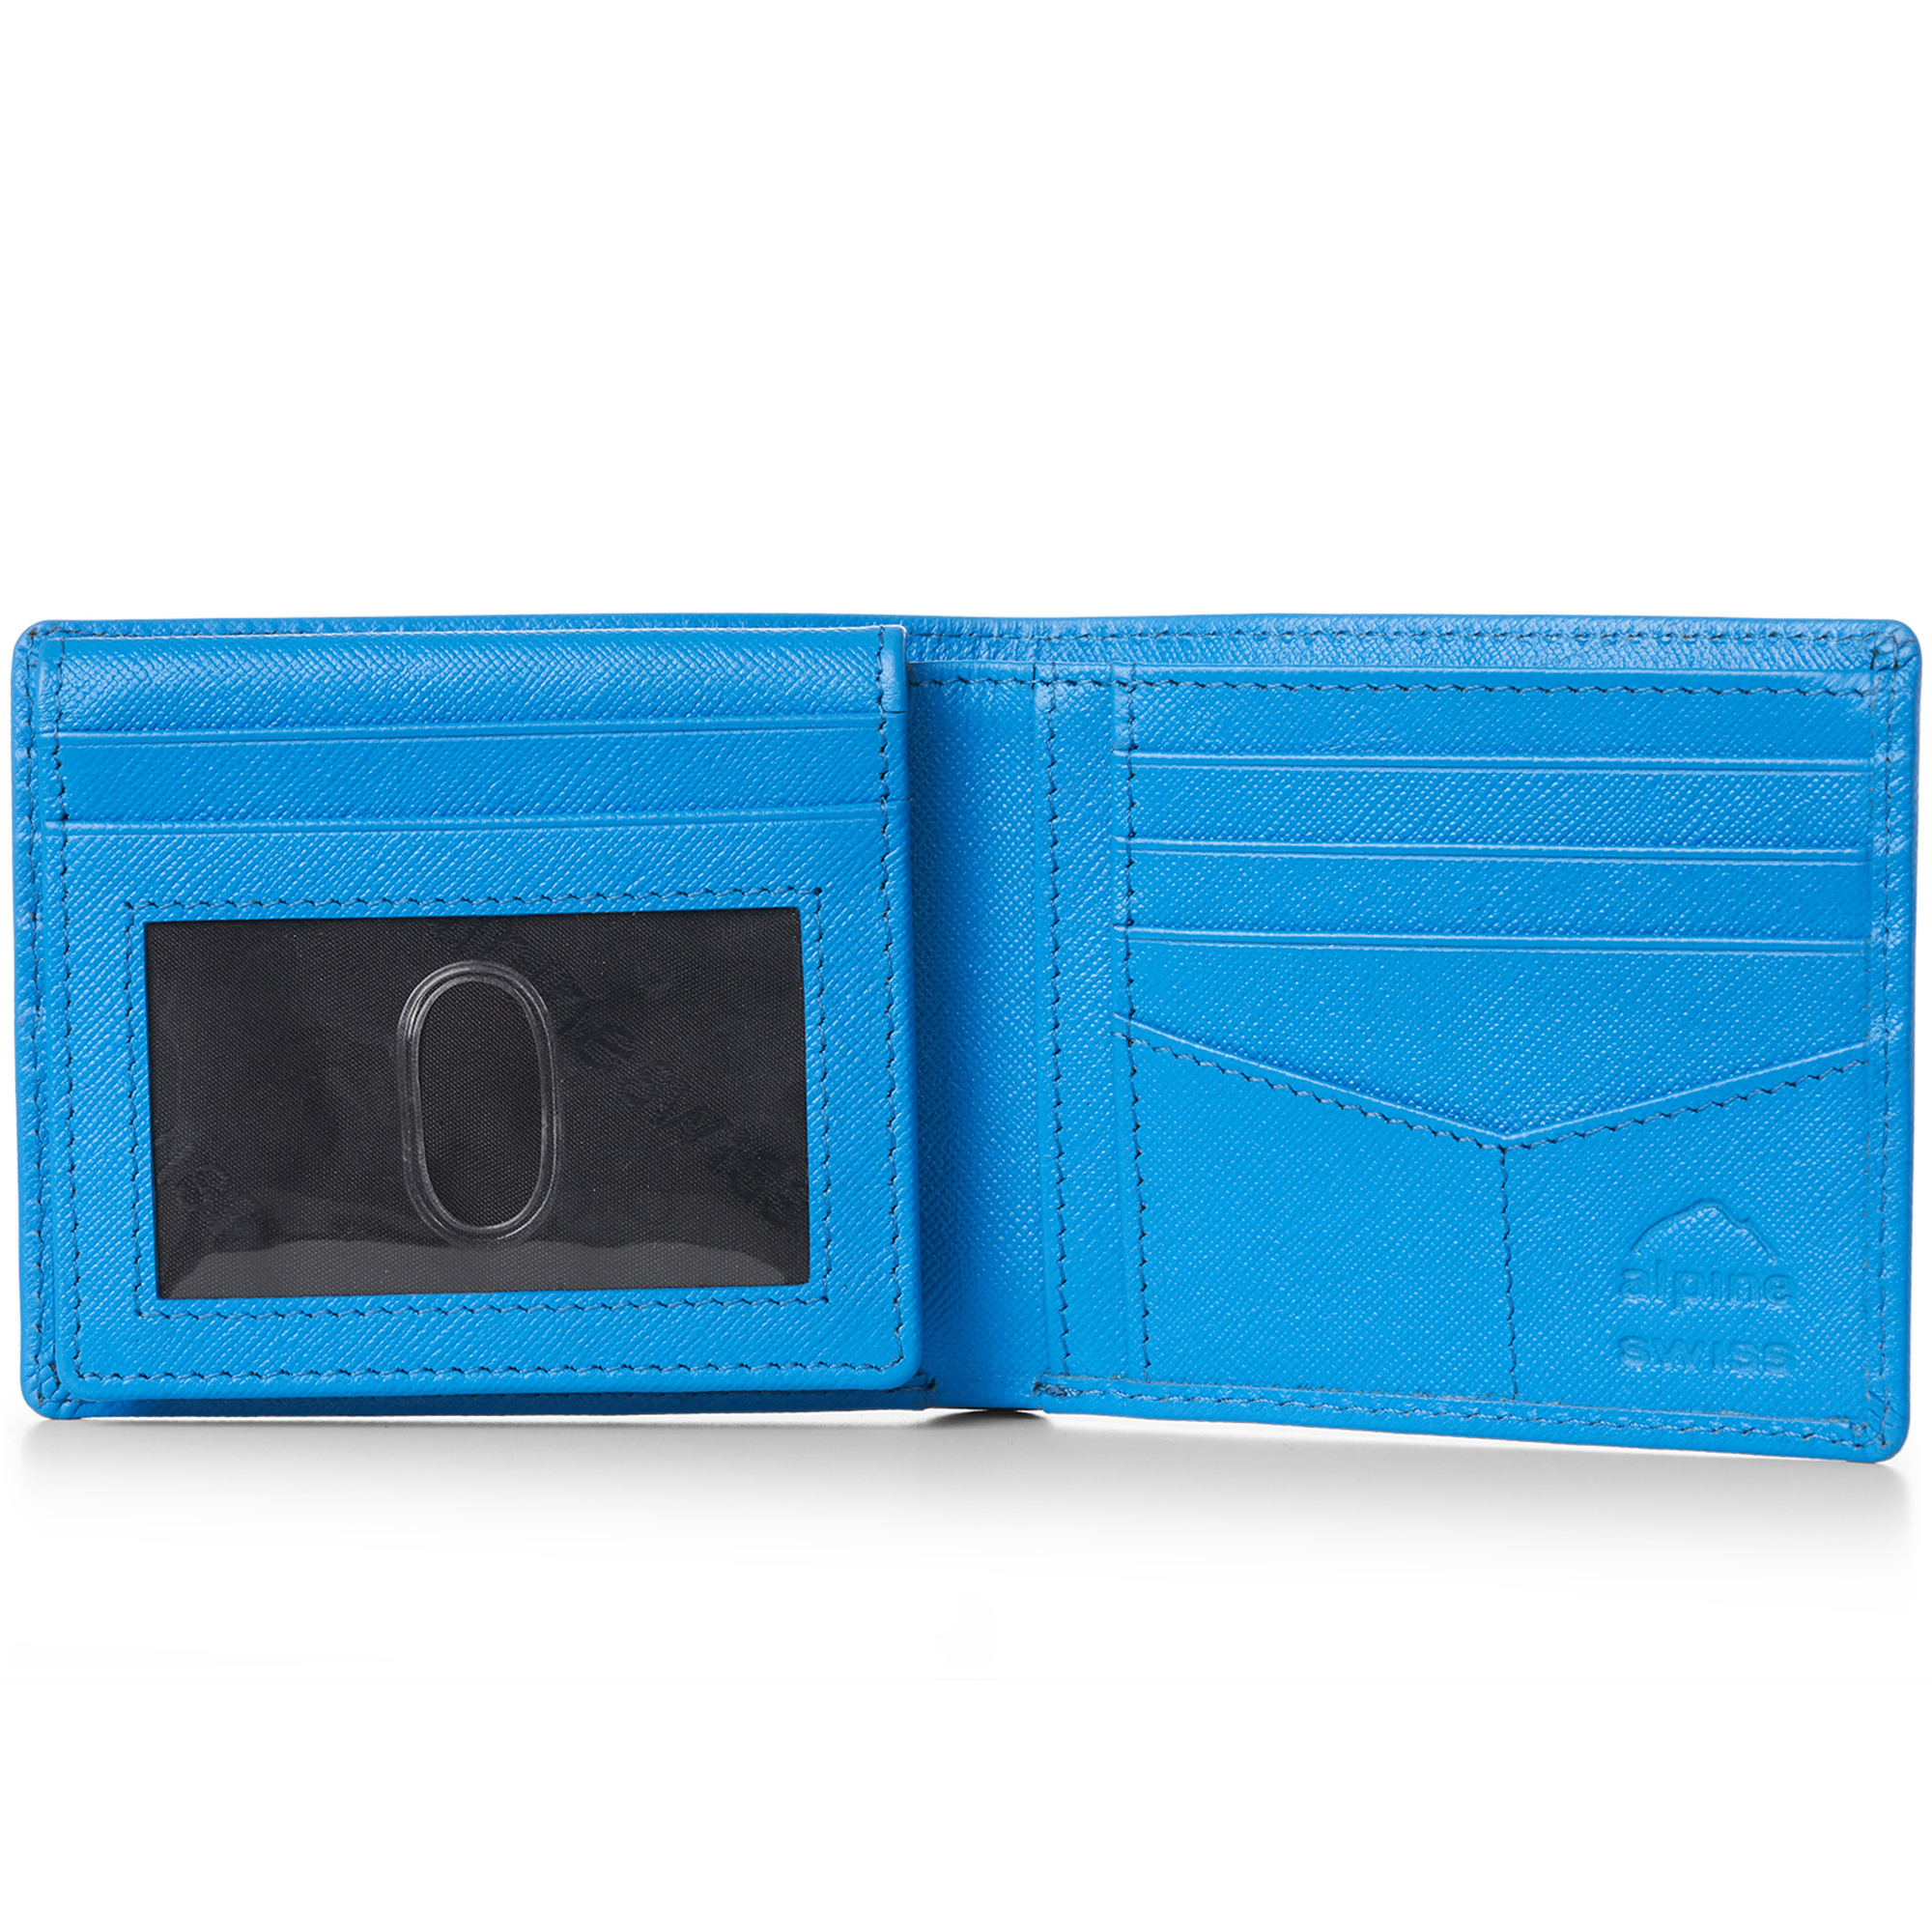 miniature 38 - Alpine-Swiss-RFID-Mens-Wallet-Deluxe-Capacity-Passcase-Bifold-Two-Bill-Sections